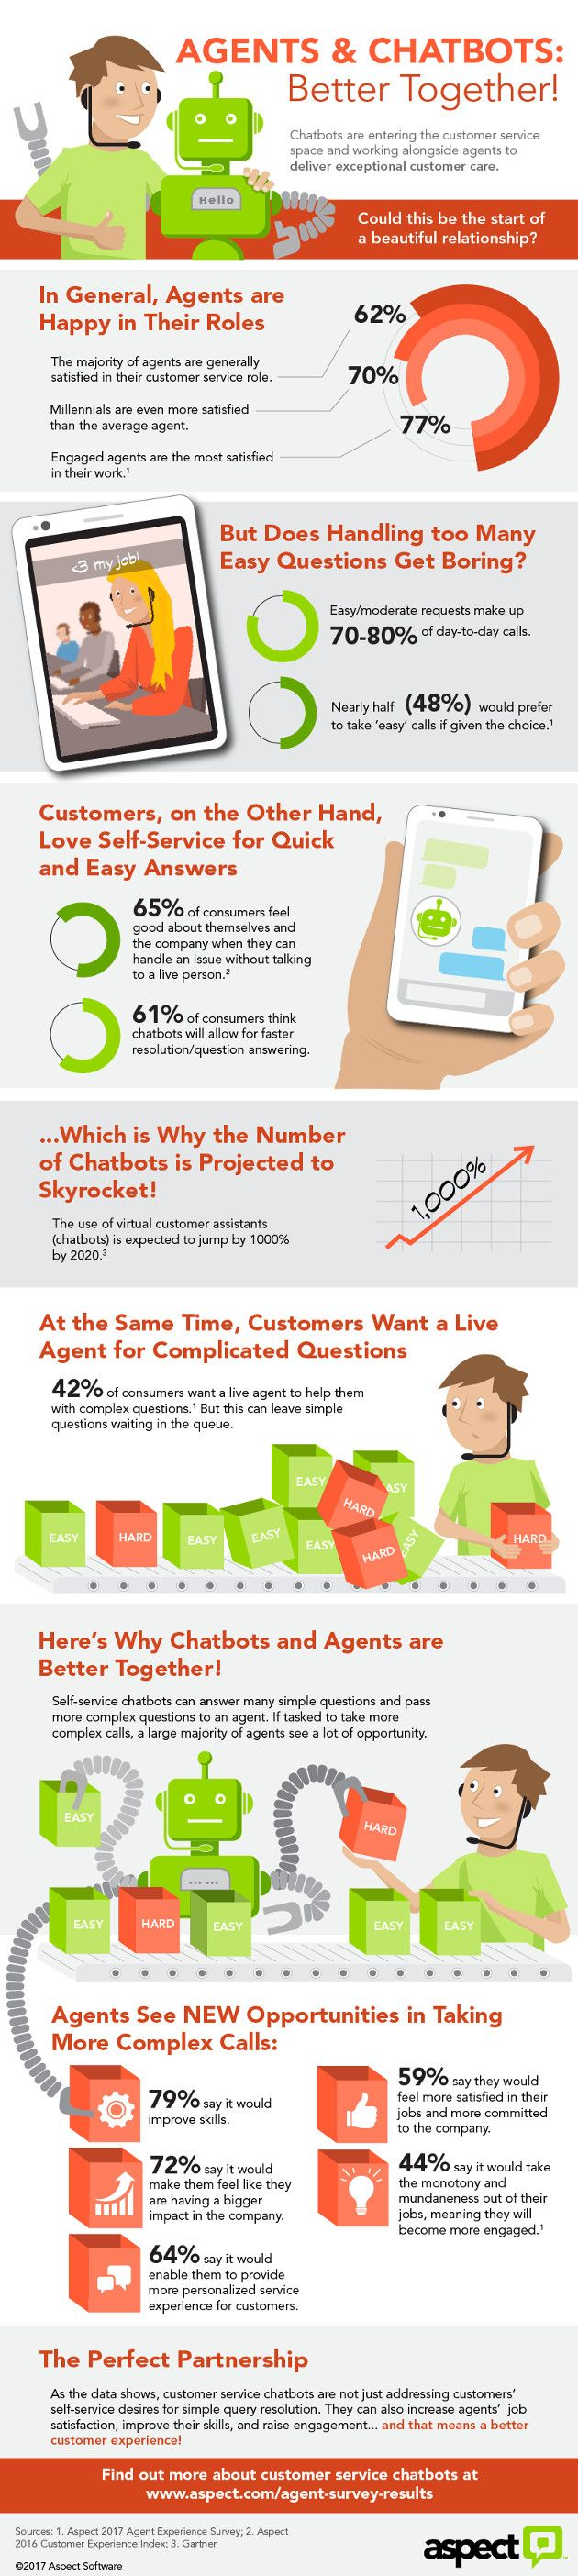 Chatbots are often positioned as an alternative to live customer service agents, but using both may give your customers the best experience. See this infographic for how they can work together.